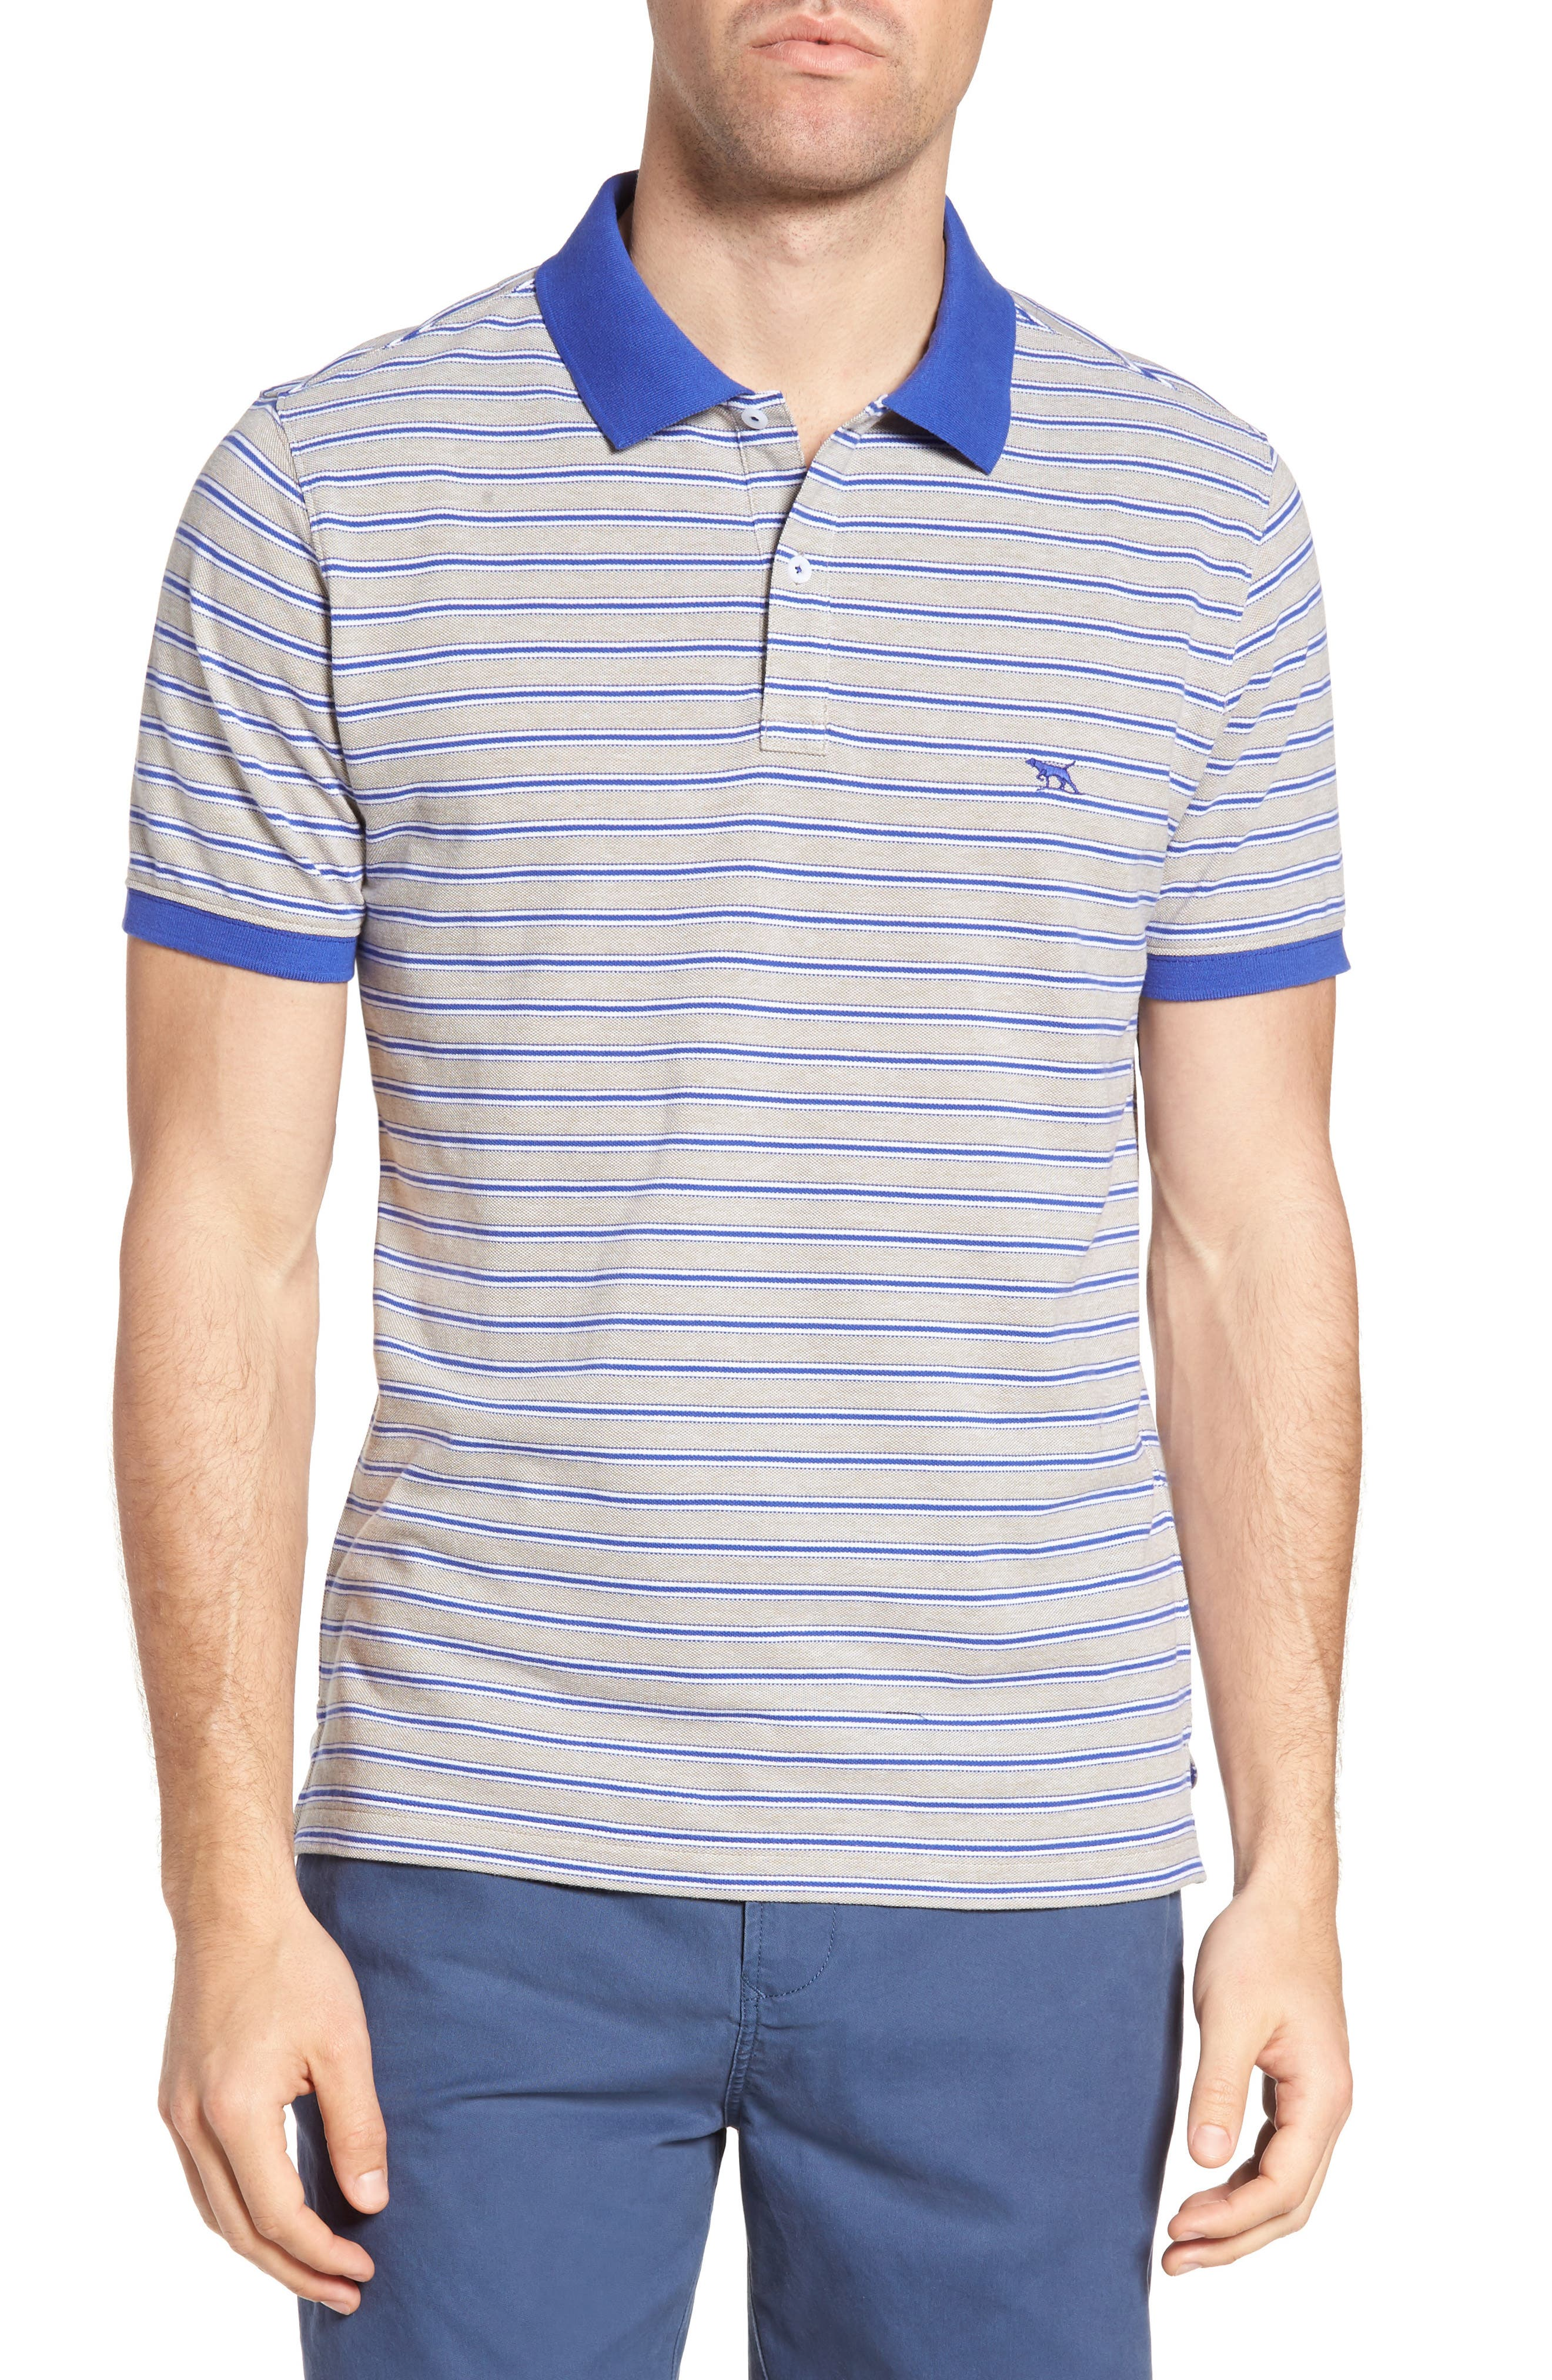 Rodd & Gunn Kempthorne Sports Fit Stripe Piqué Polo